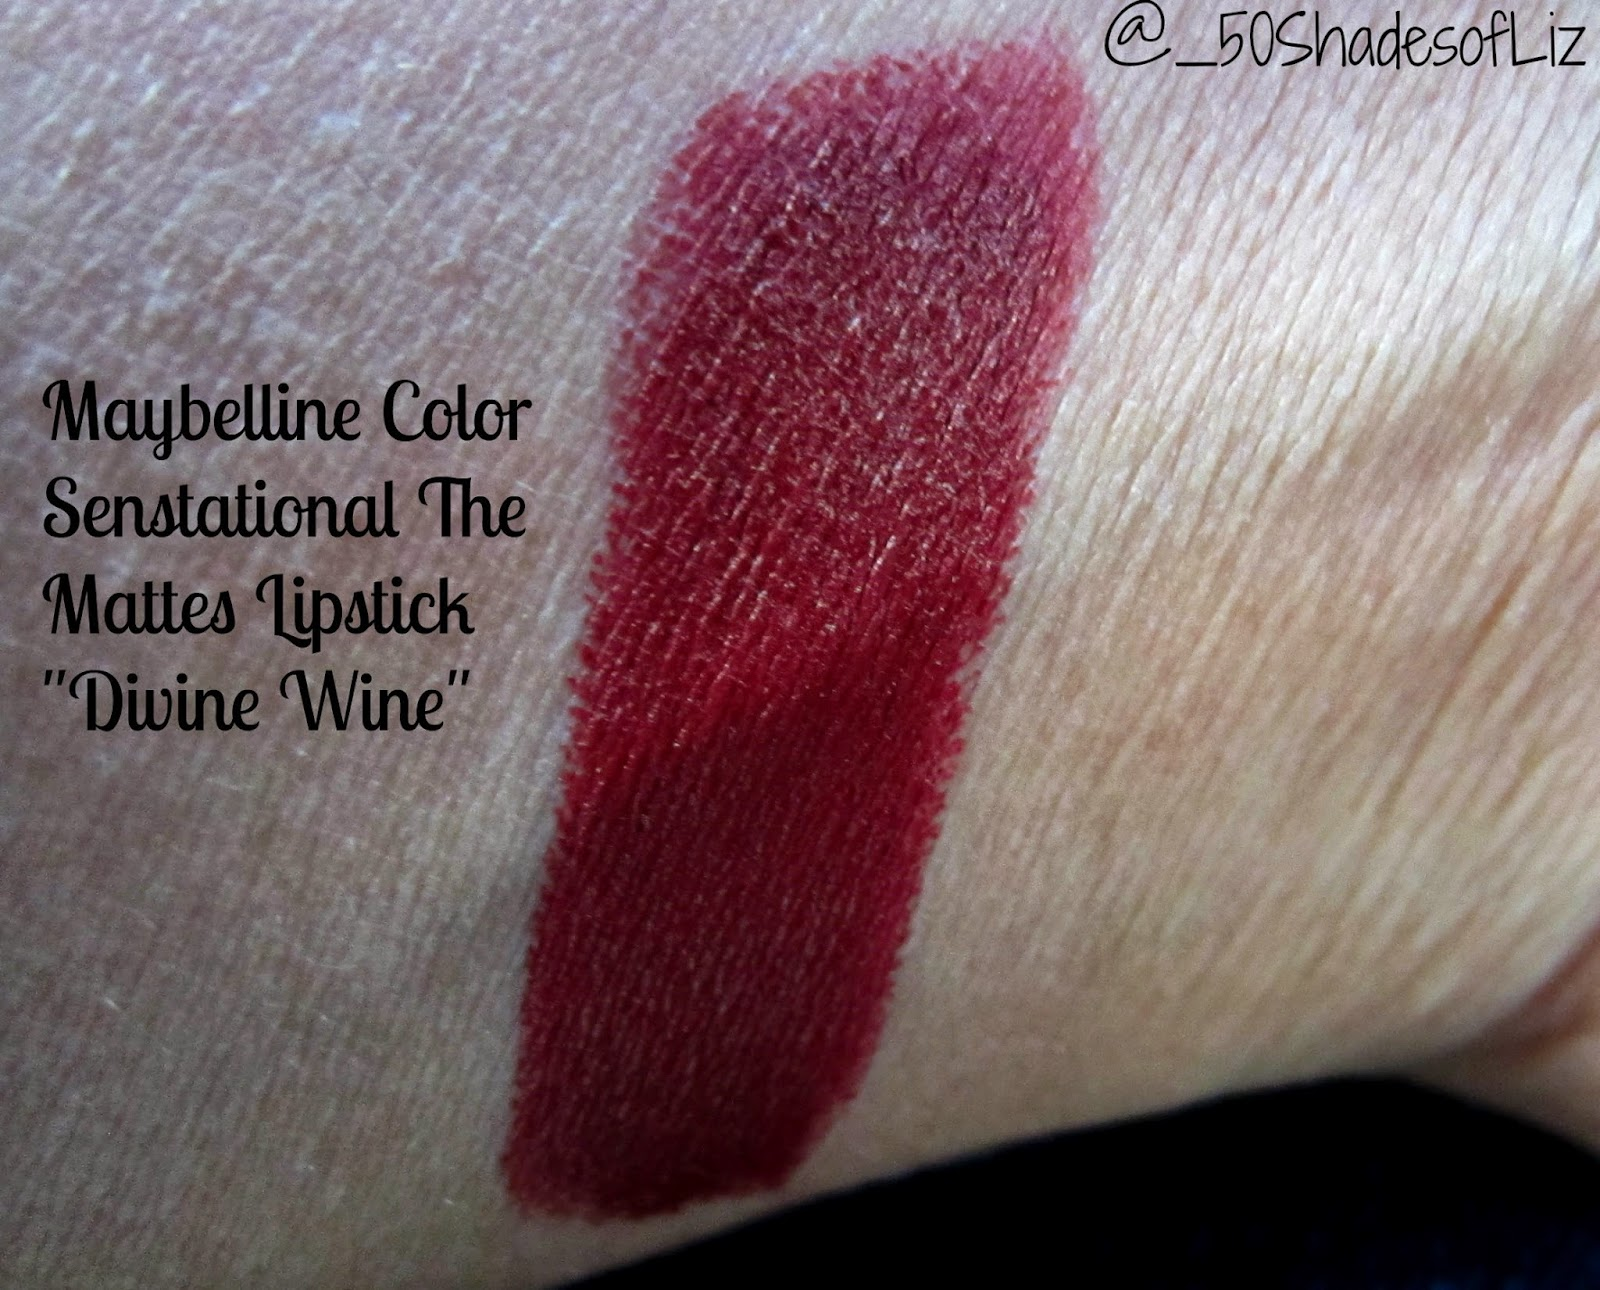 Maybelline Color Sensational The Mattes in Divine Wine: Swatches and Review